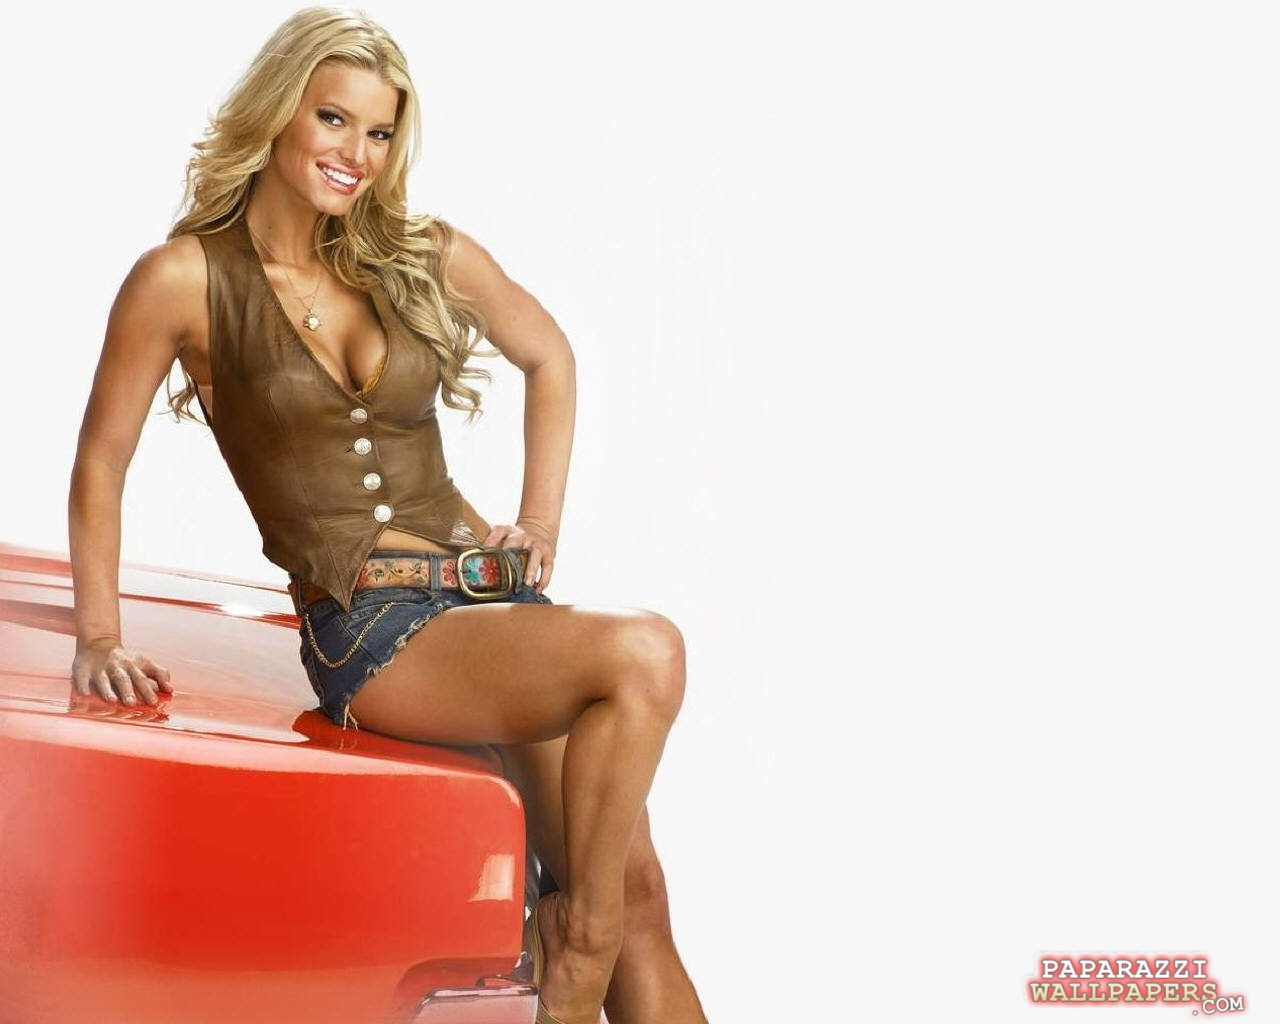 jessica simpson wallpapers 044